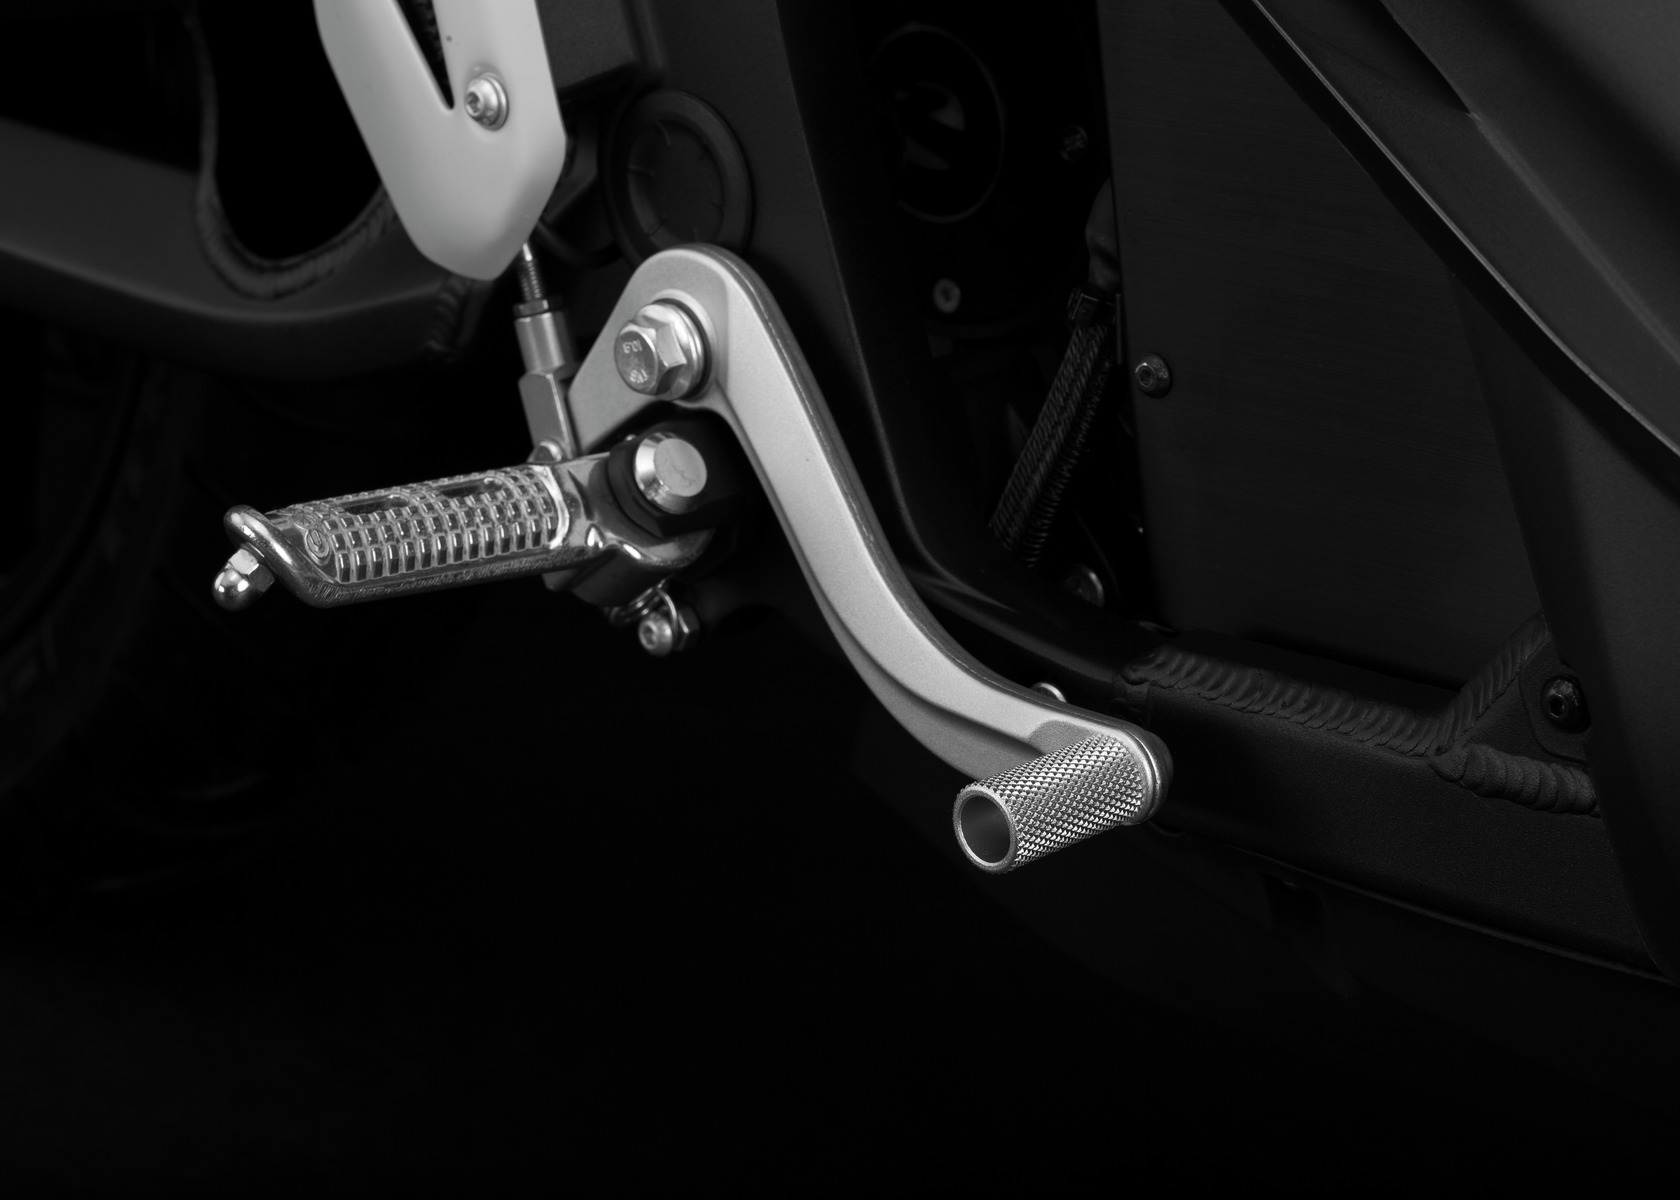 2016 Zero SR Electric Motorcycle: Brake Pedal